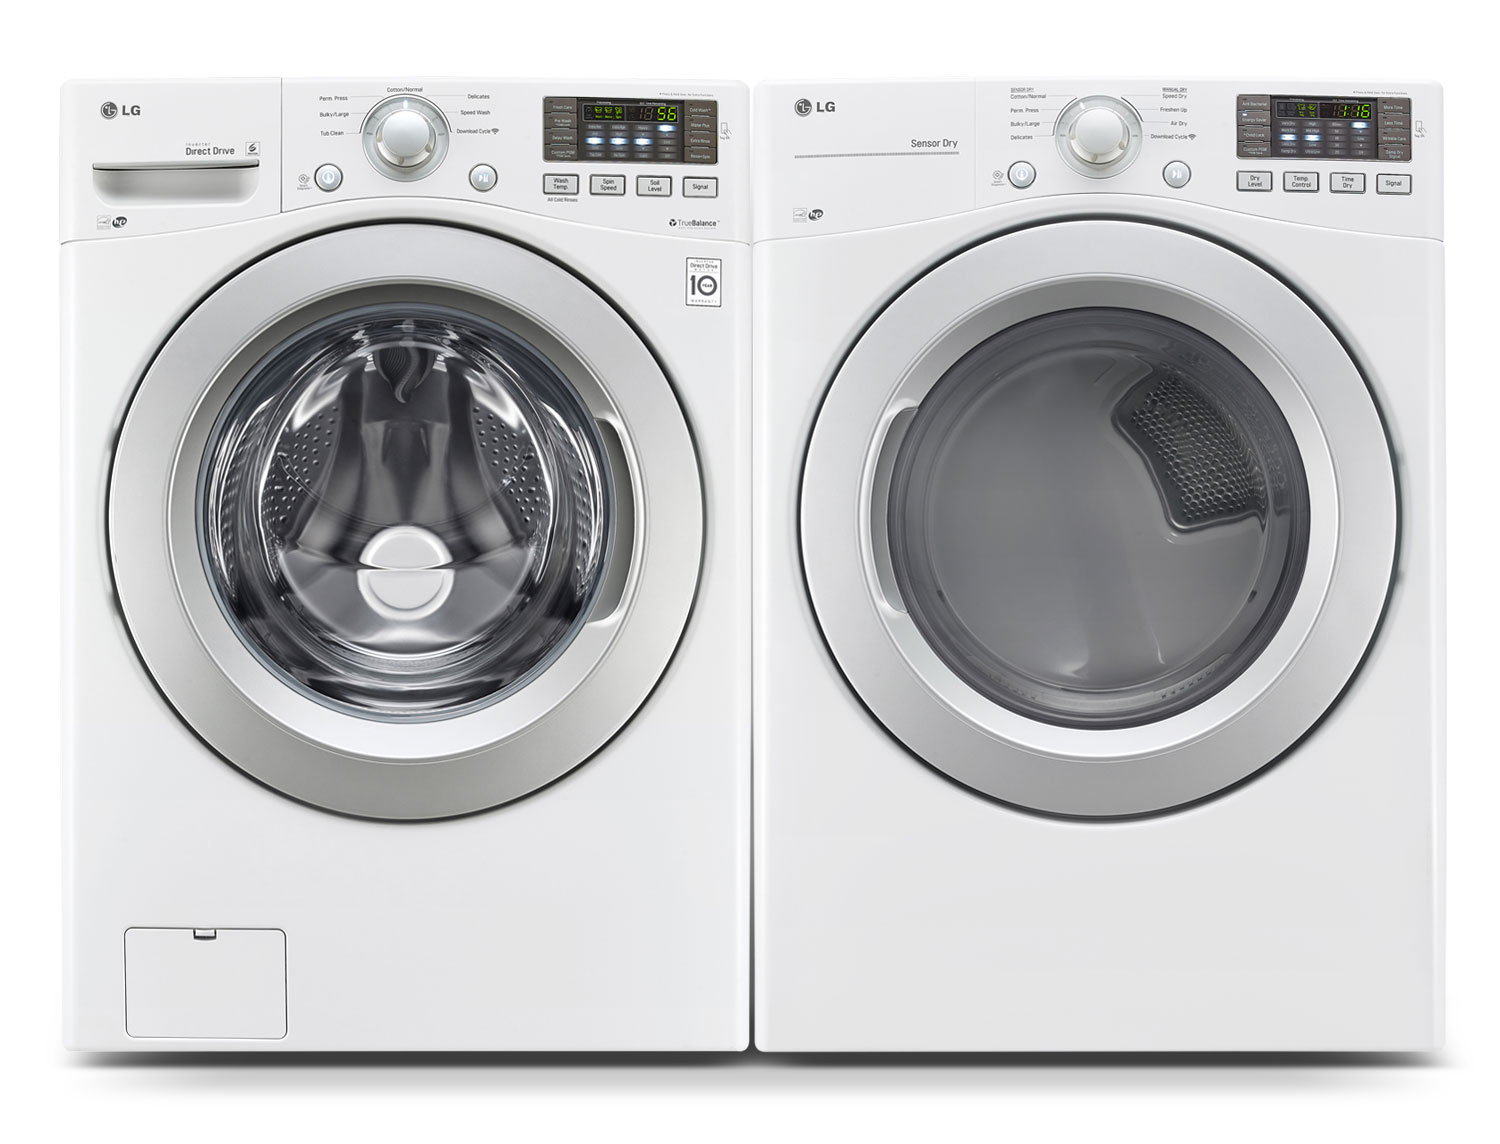 Washers and Dryers - LG 5.2 Cu. Ft. Front-Load Washer and 7.4 Cu. Ft. Gas Dryer – White